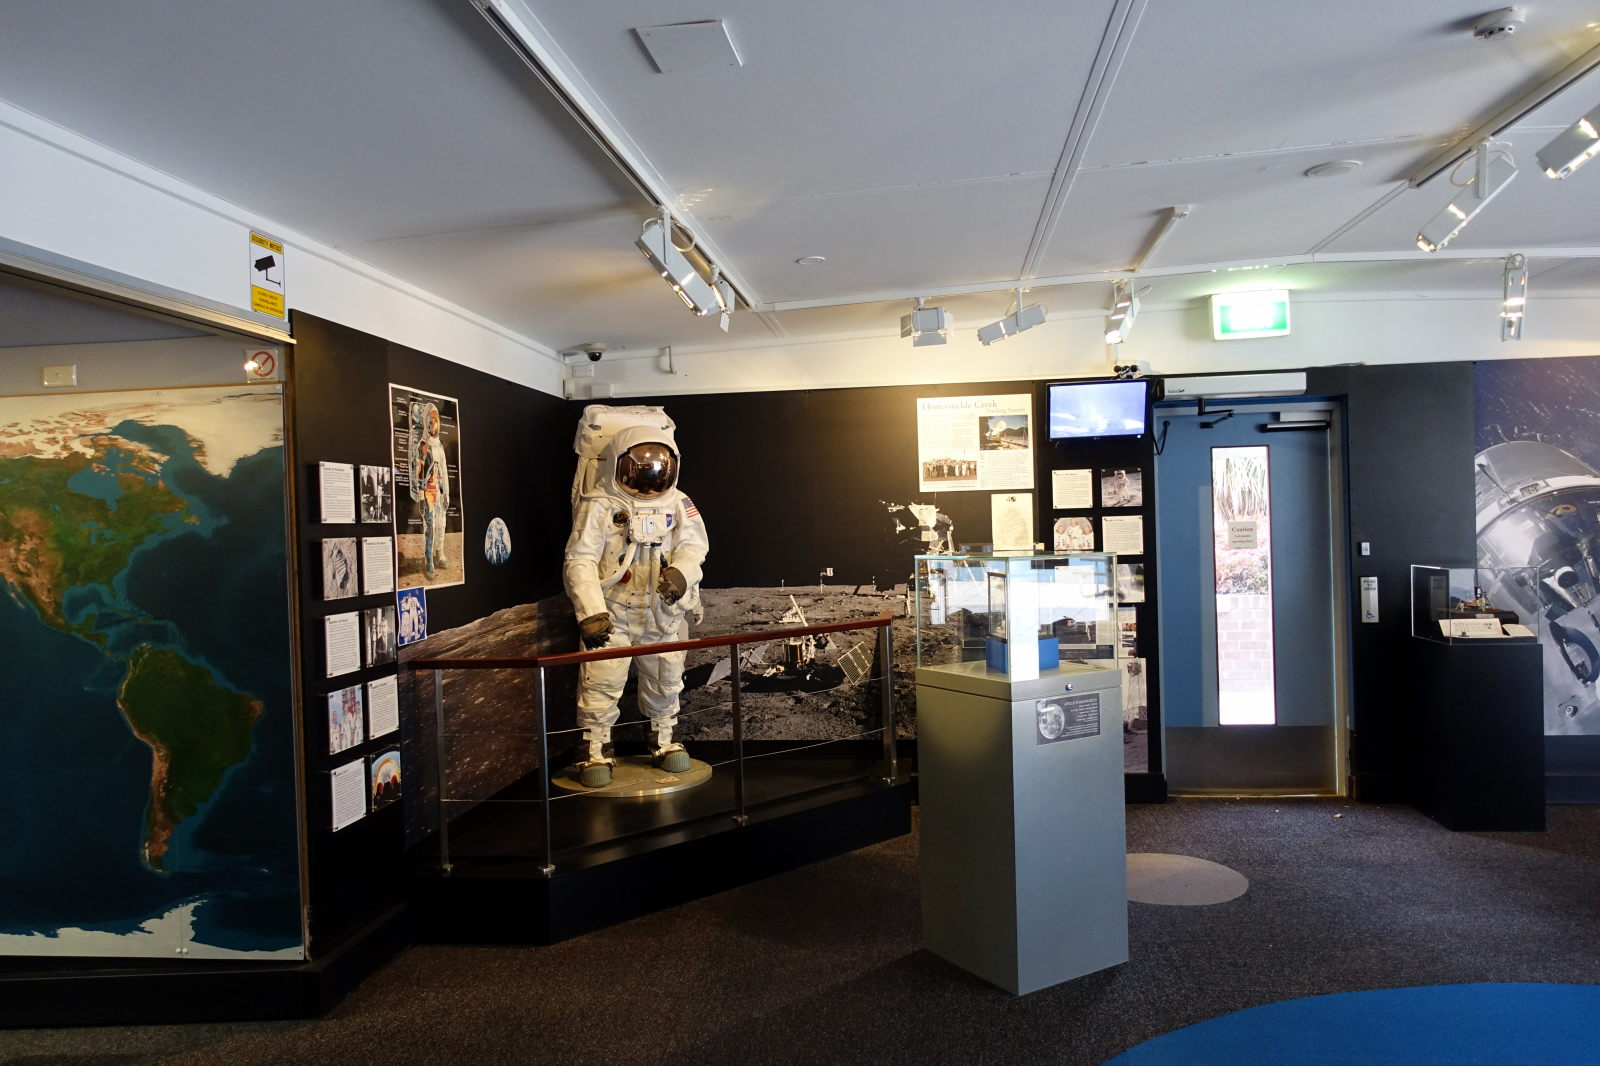 Picture shows one of the museum rooms. The most disctinctive part is a model of the astronout in front of the big wallpaper showing moon's surface.